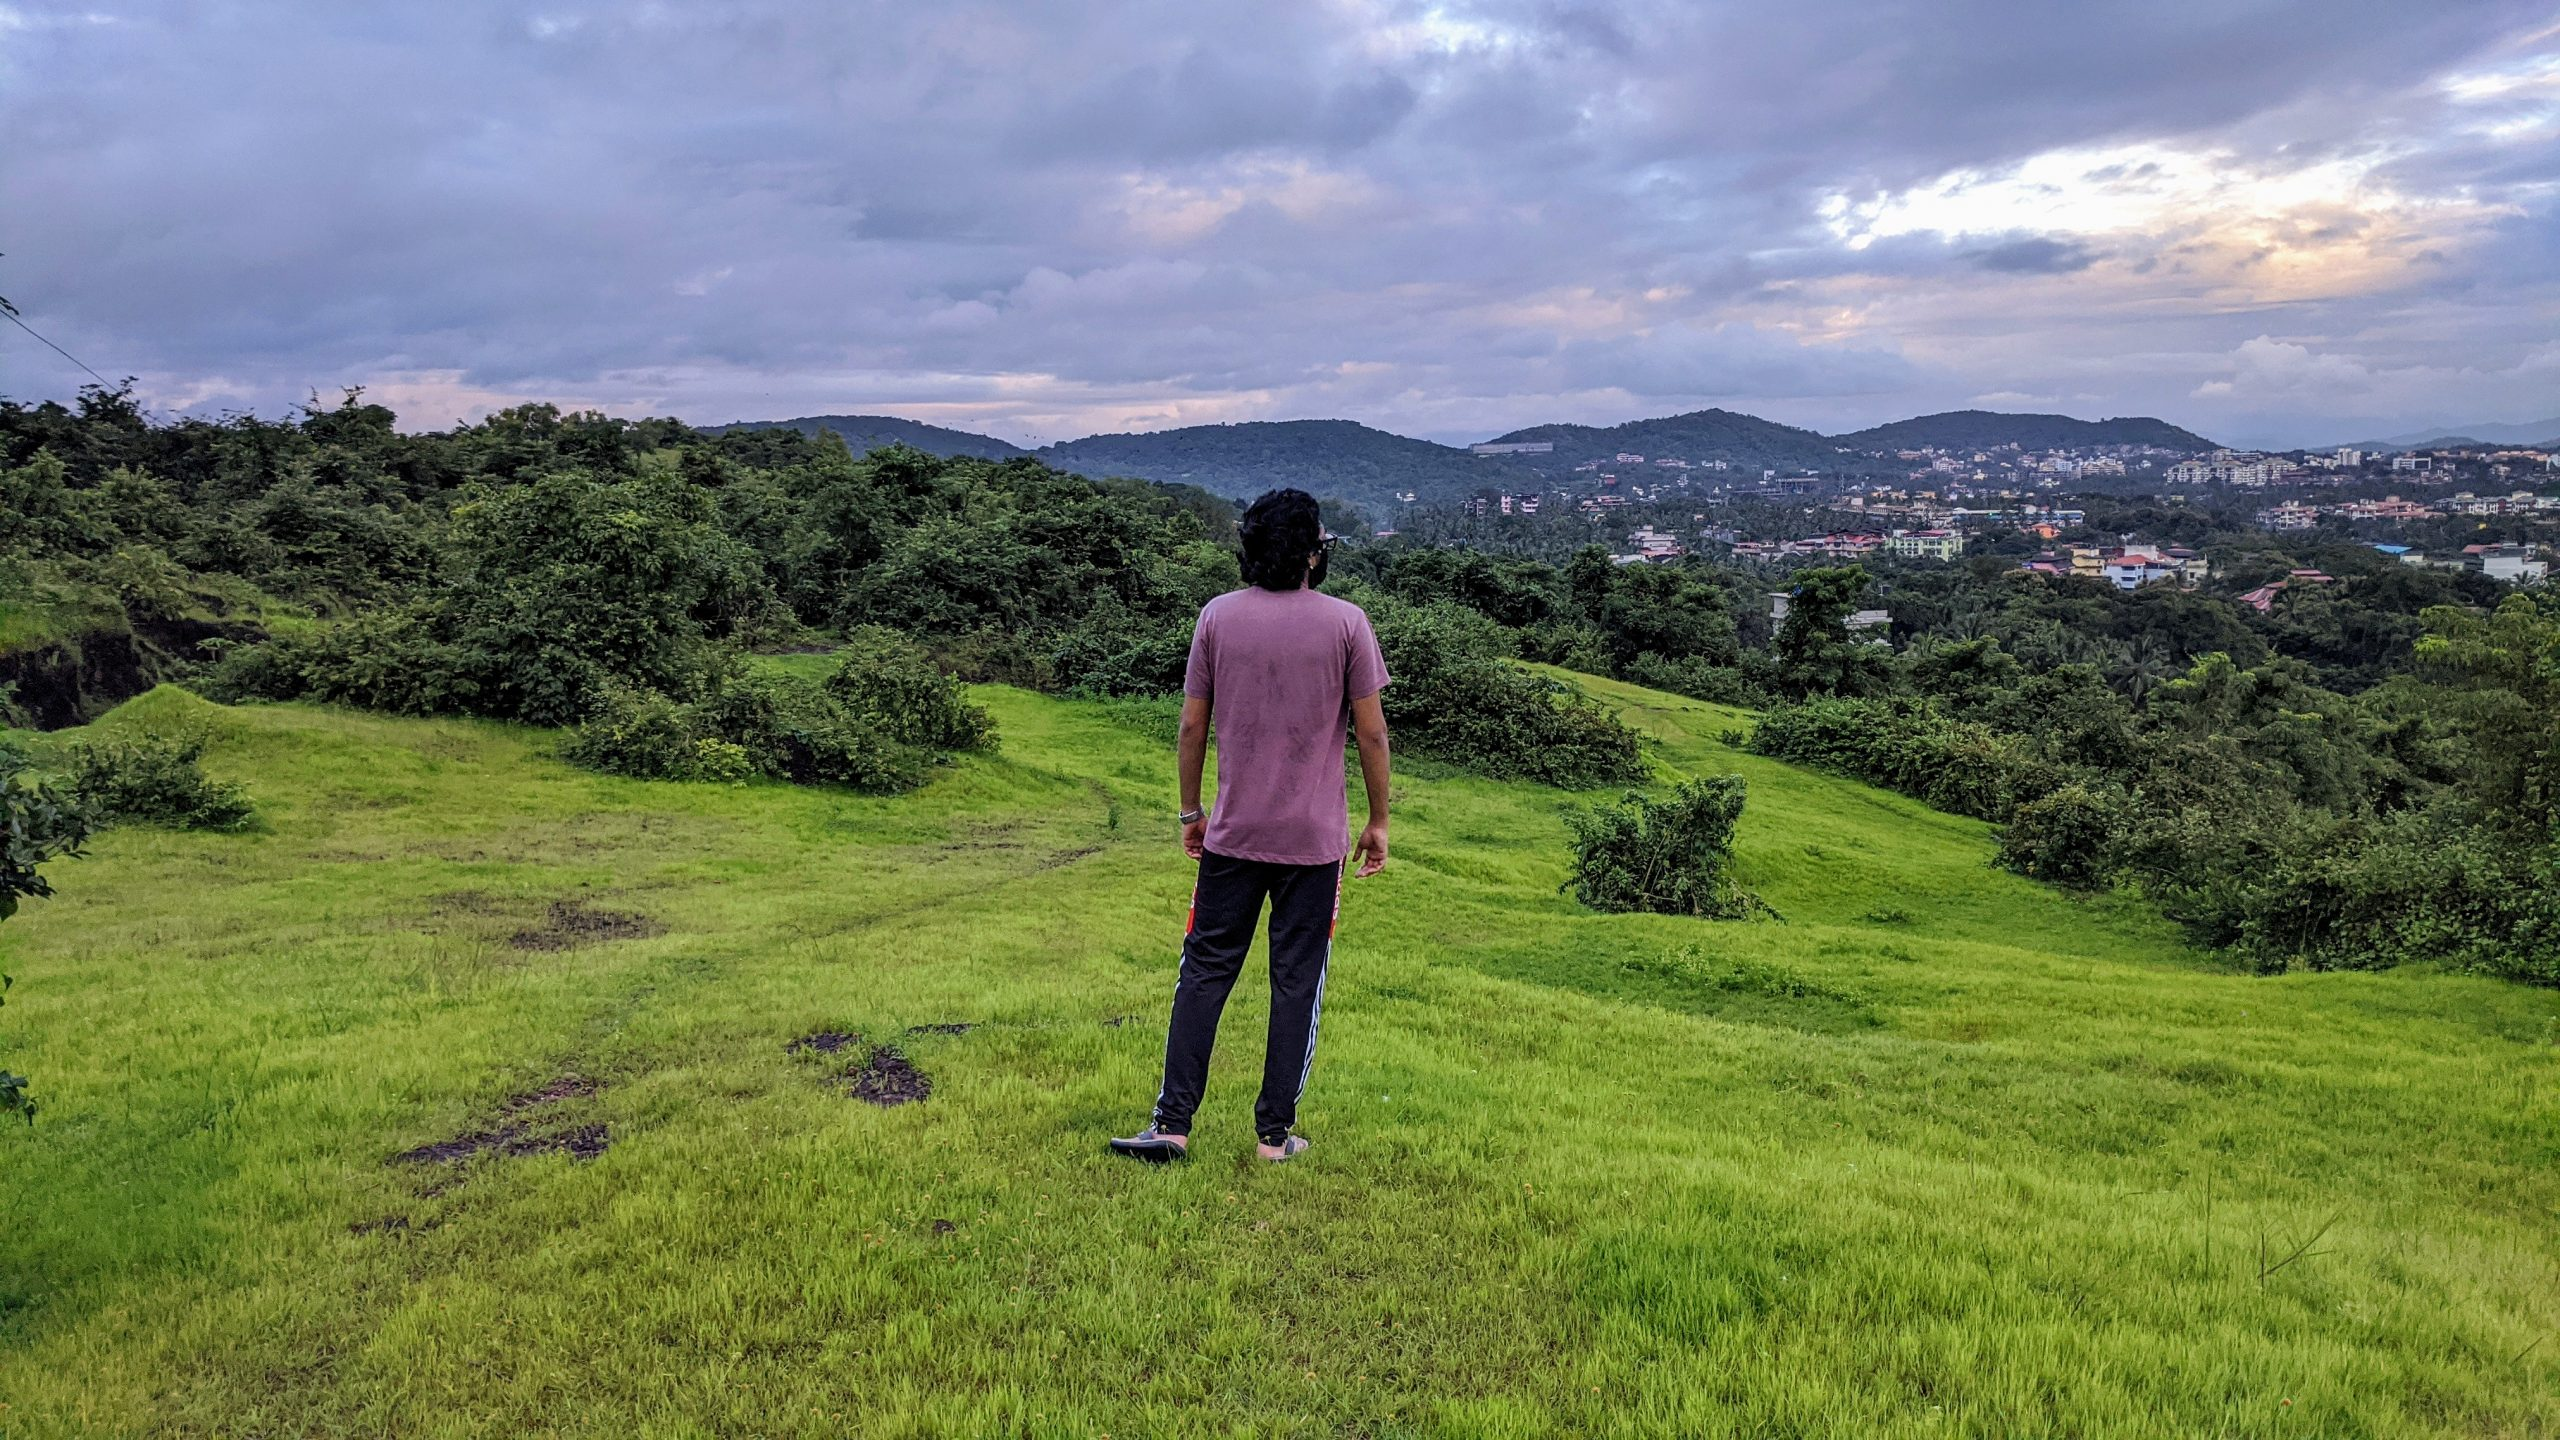 A man in a valley